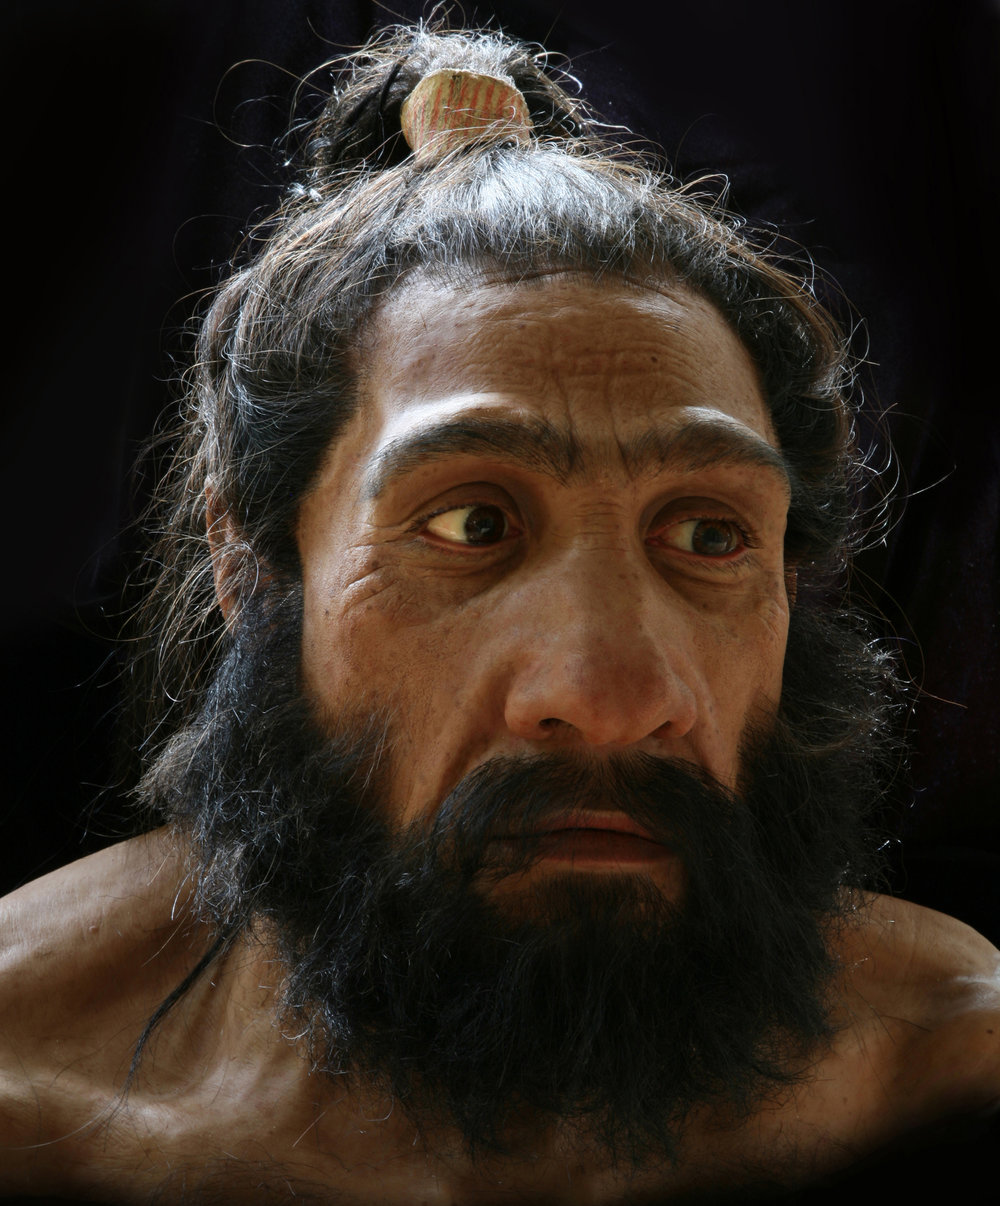 Neandertal male, based on Shanidar 1 from Iraq. On display in the Smithsonian's Hall of Human Origins.